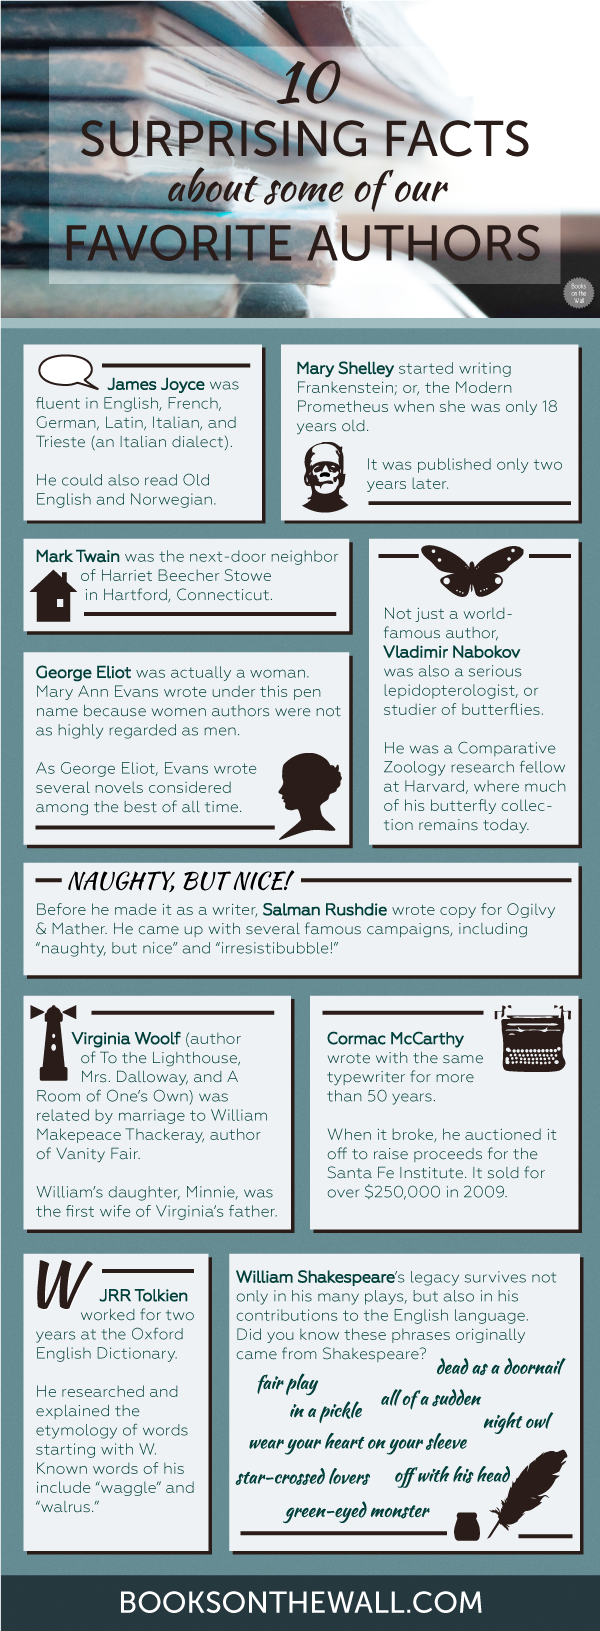 150 Interesting Facts About Our Favorite Authors [Infographic]